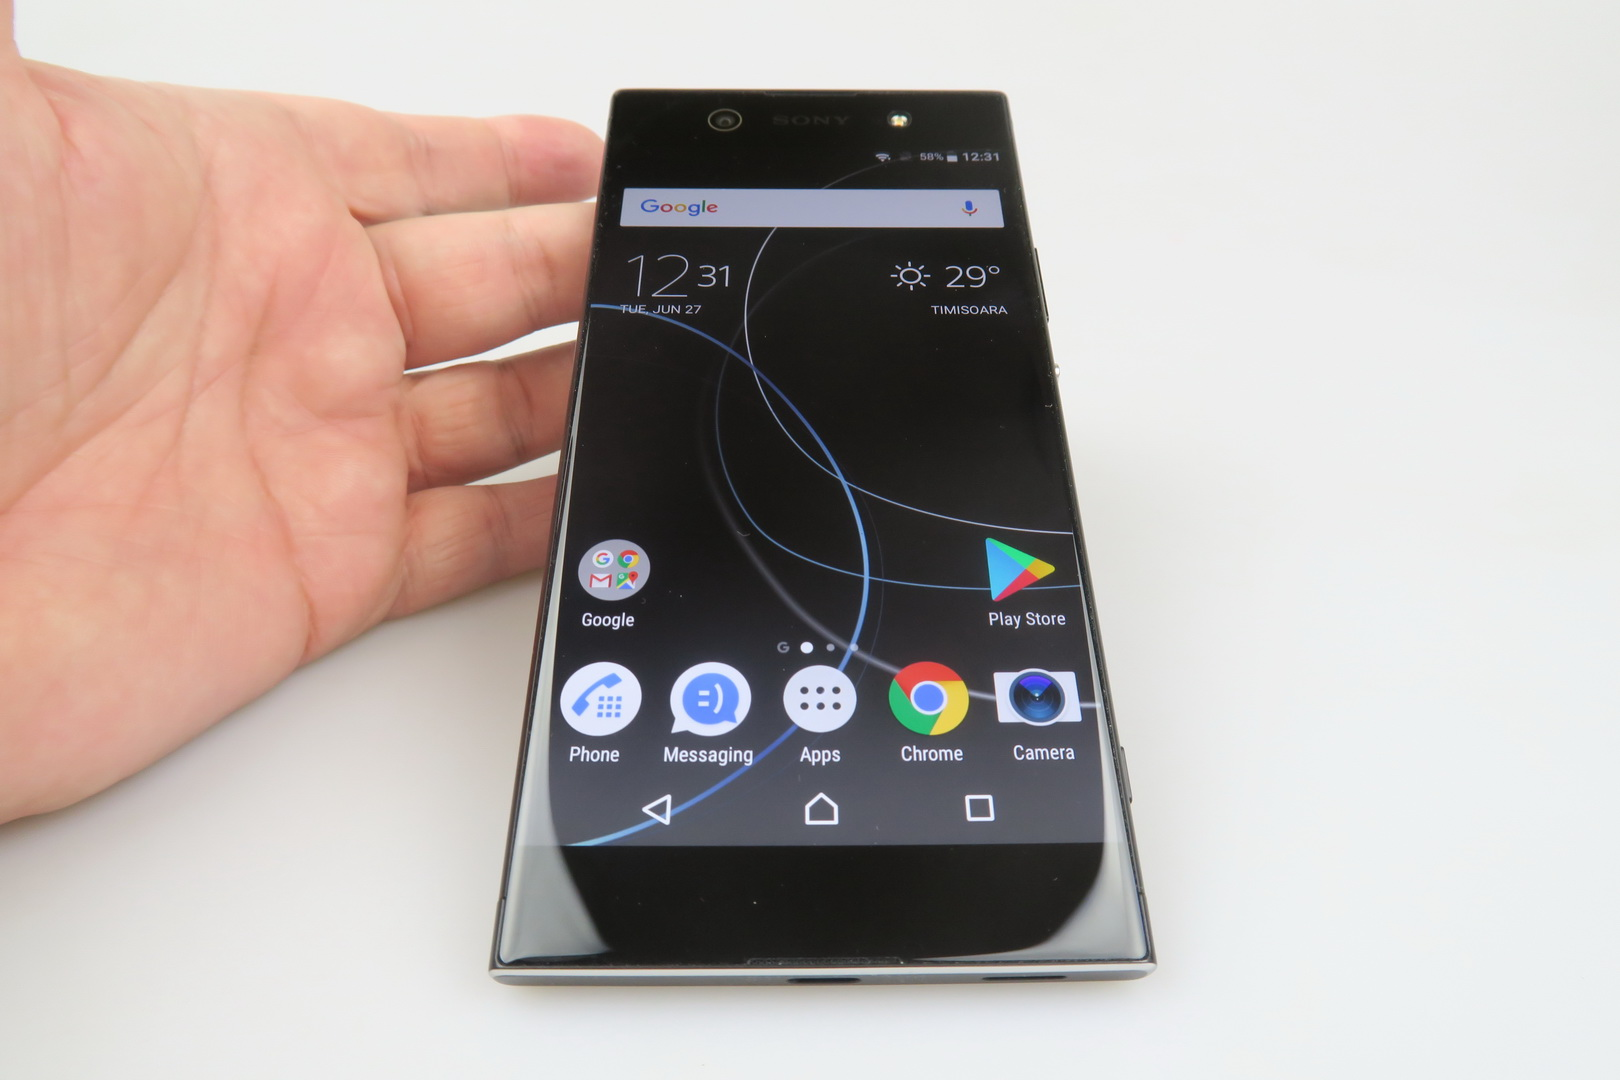 buy popular 9fbbe fd886 Sony Xperia XA1 Ultra Review: Phablet Love is Back (Video)   GSMDome.com